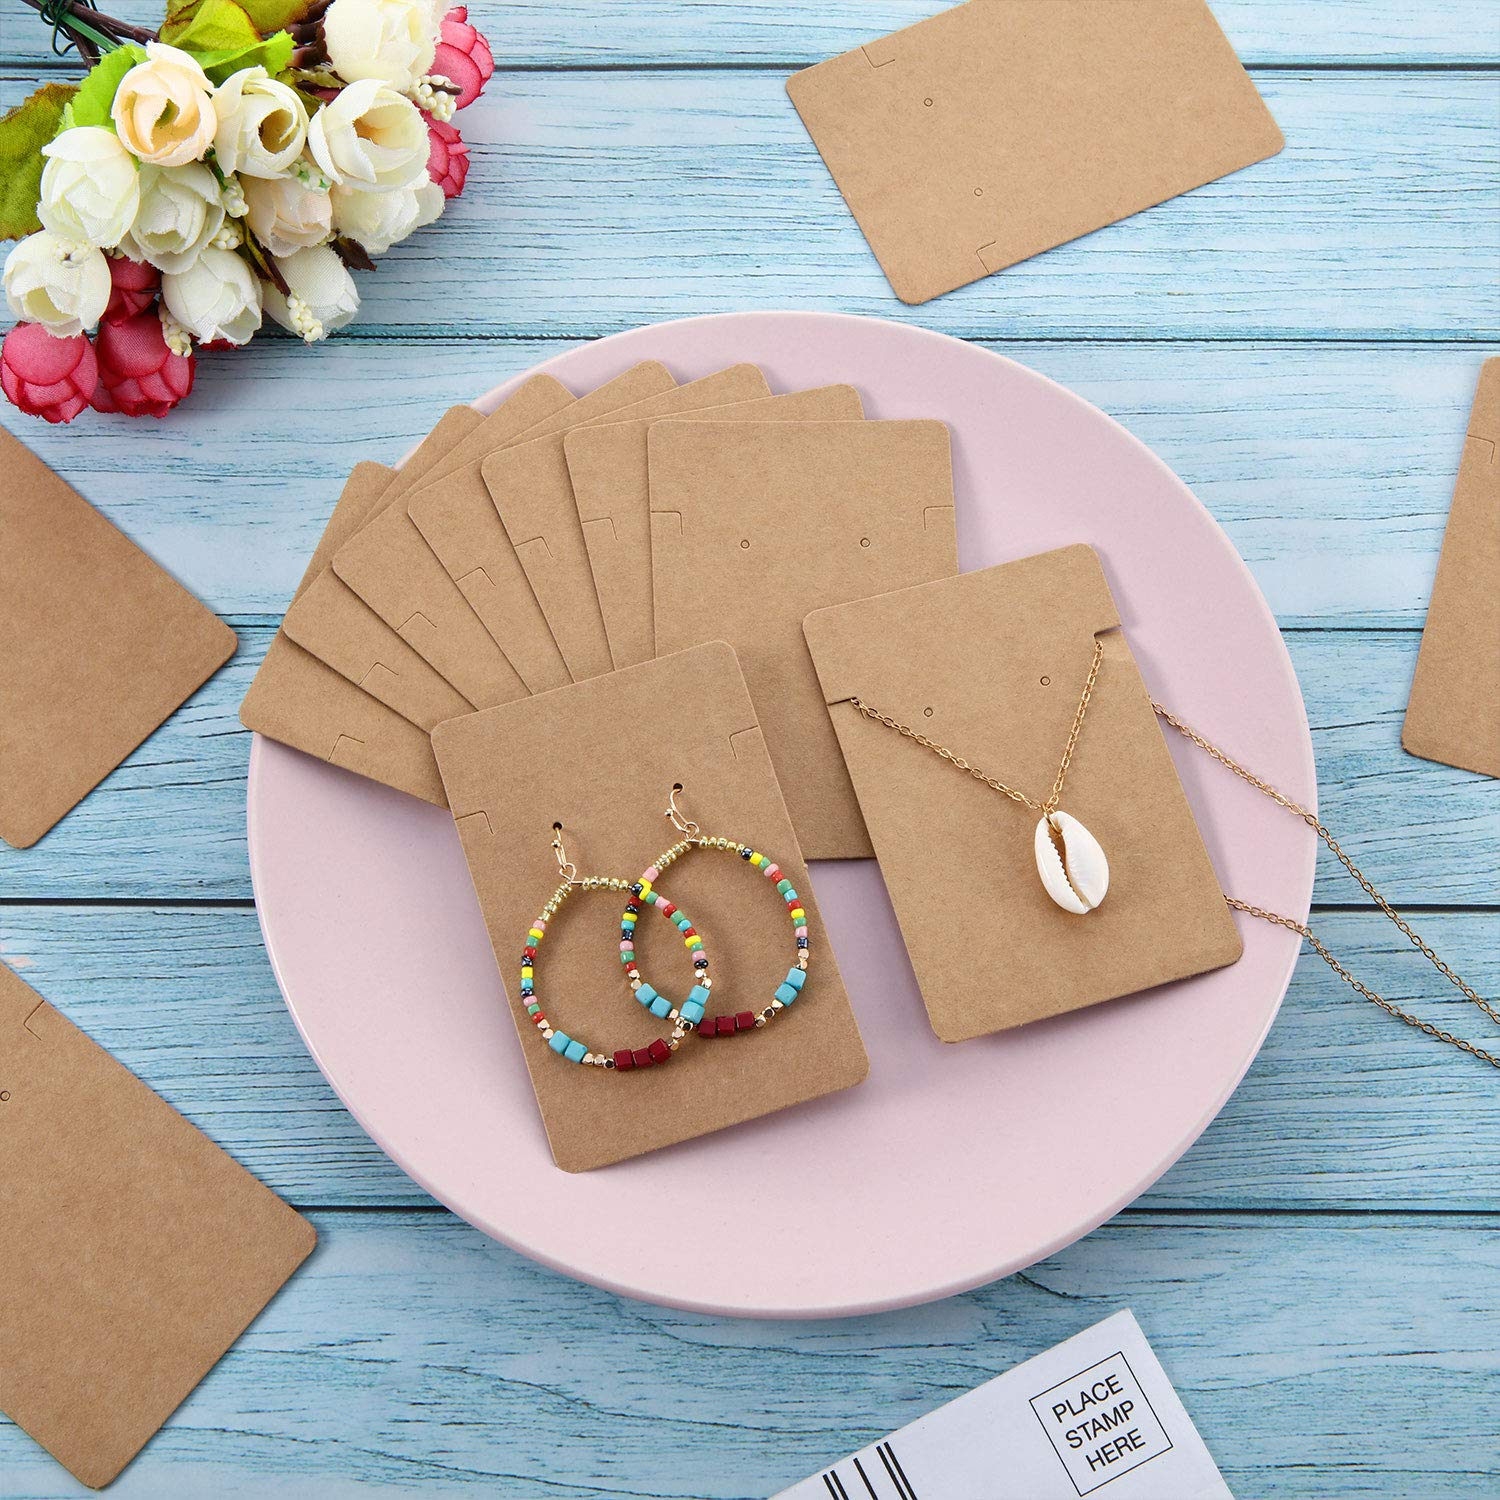 300 Pieces Necklace Earring Display Cards with 300 Pieces Self-Sealing Bags for Stud Earrings Dangle Earrings Pendant Earrings Necklace Chain Black